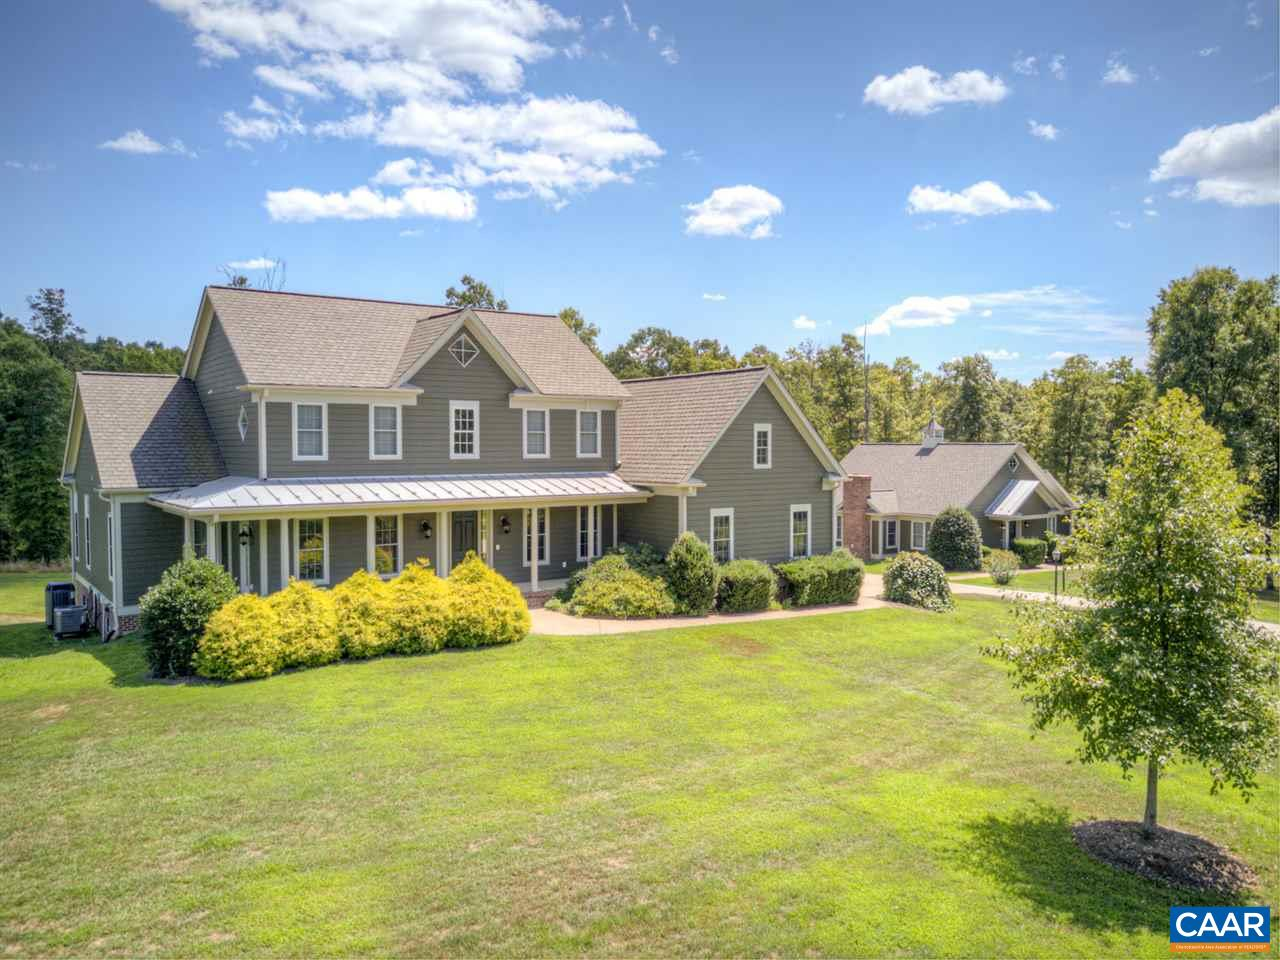 home for sale , MLS #587326, 285 Llama Farm Rd